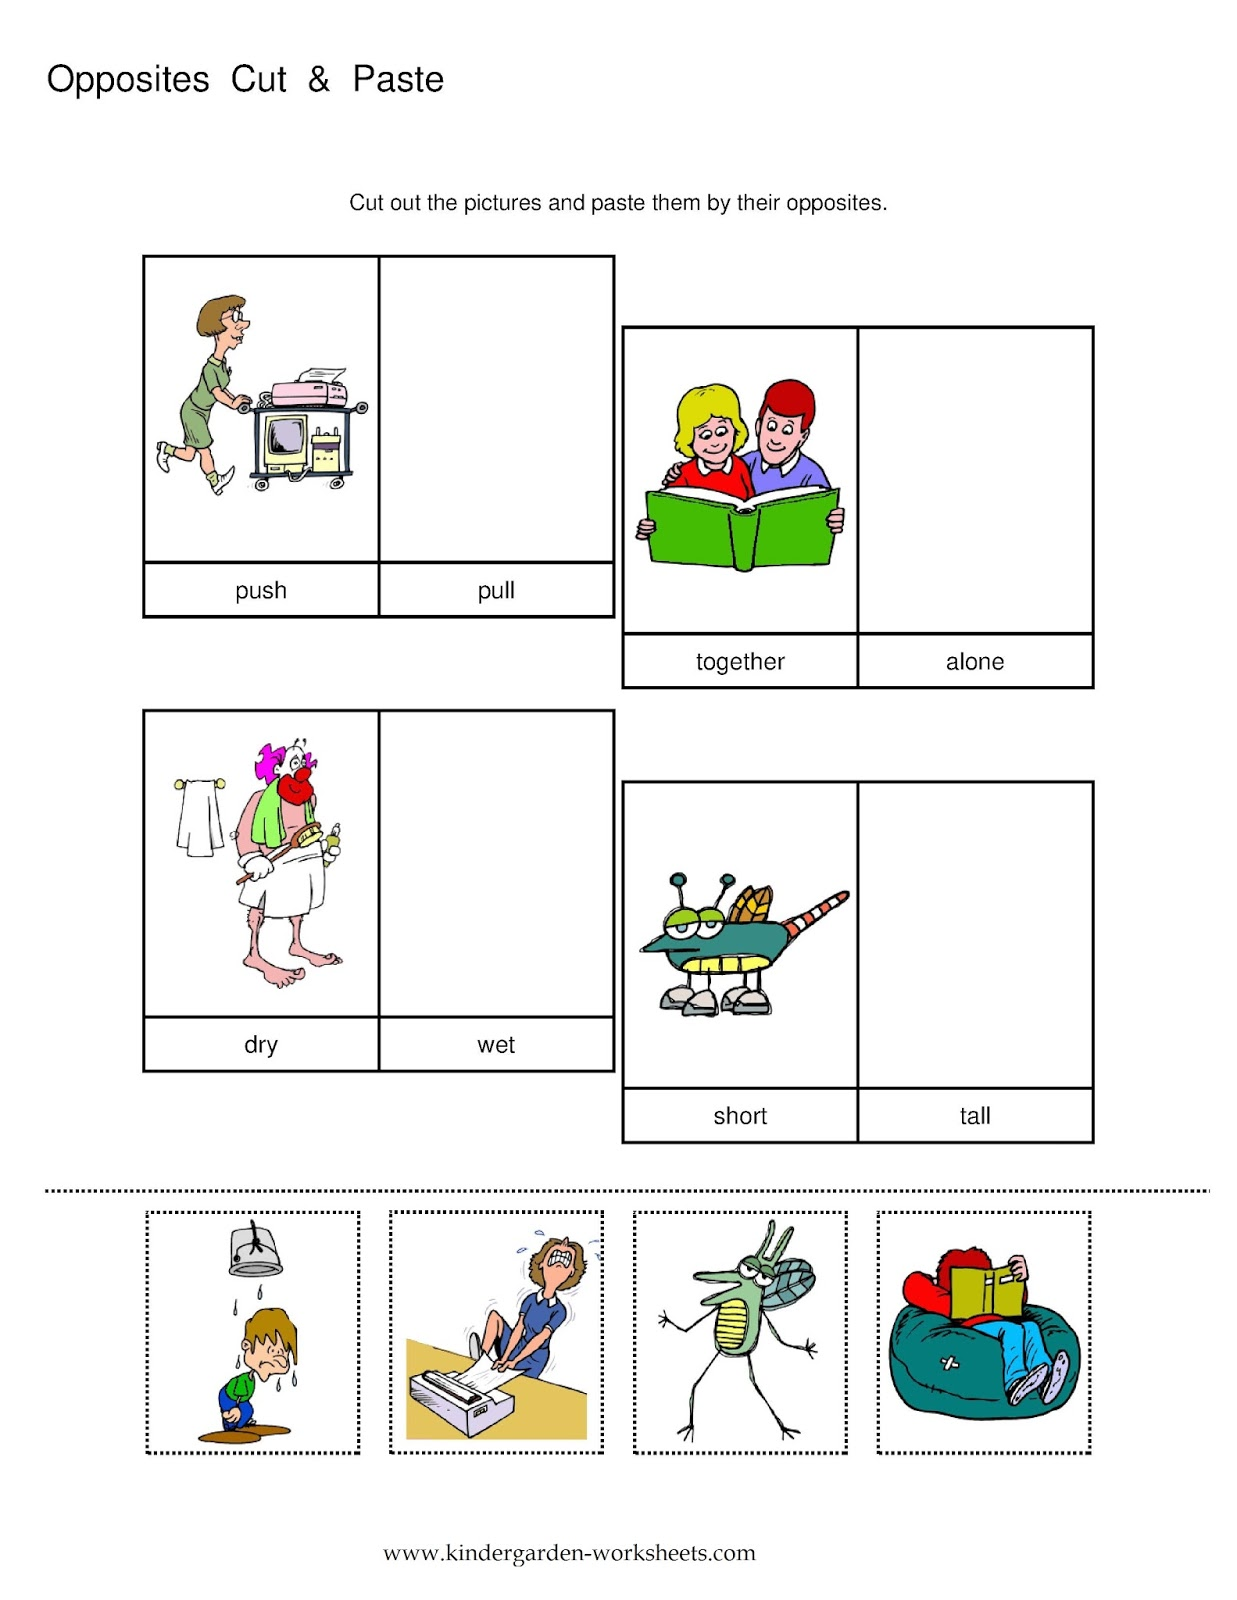 Worksheet Worksheets On Opposites worksheet on opposites mikyu free kindergarten worksheets opposite words tracing letter addition subtraction multiplication wor